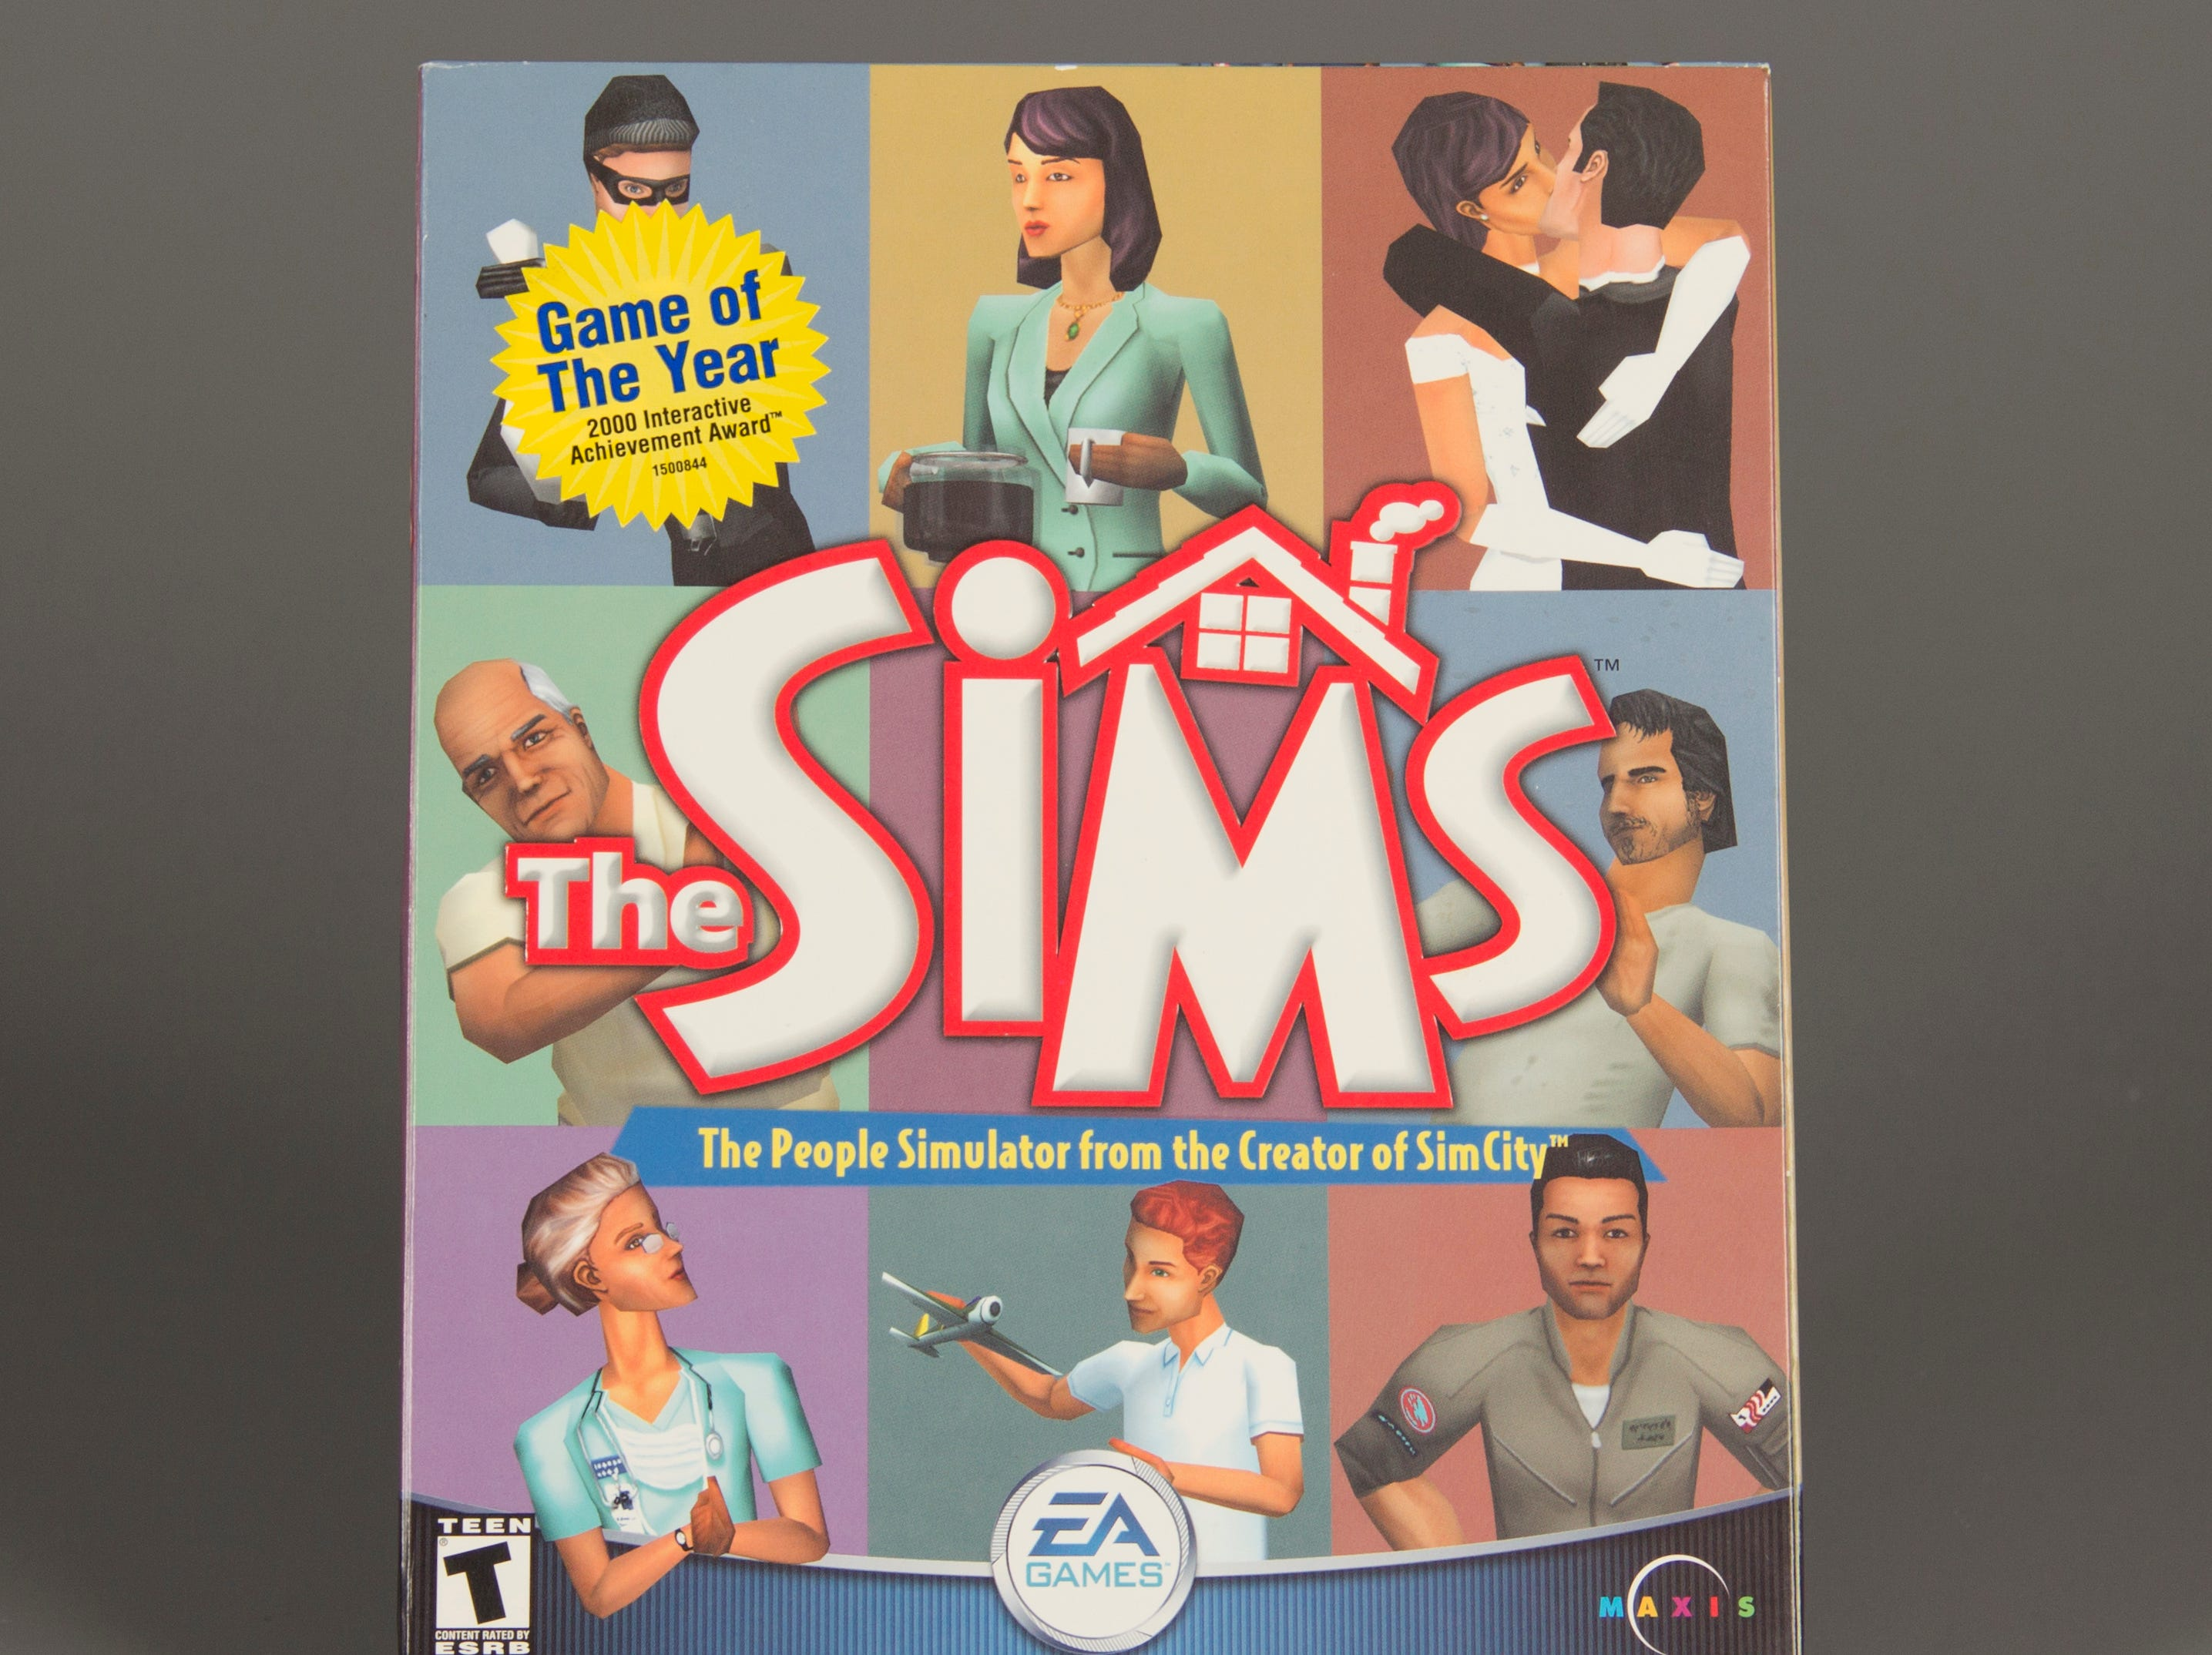 The Sims was inducted into the World Video Game Hall of Fame at The Strong National Museum of Play in Rochester, New York in 2016.